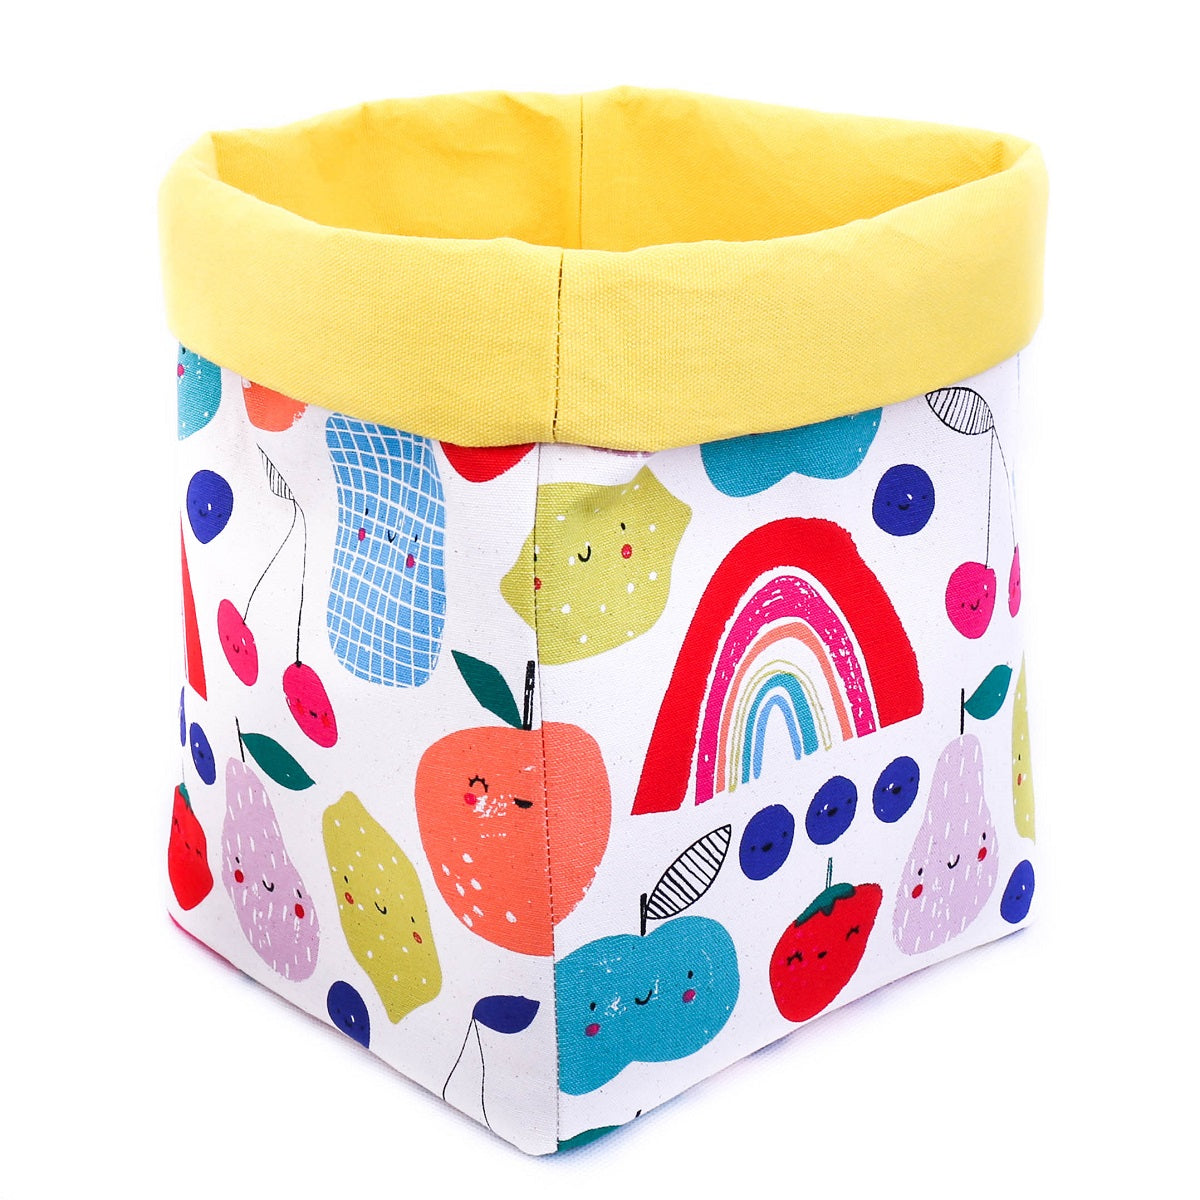 yellow foldable storage baskets  - happy fruits - canvas storage basket